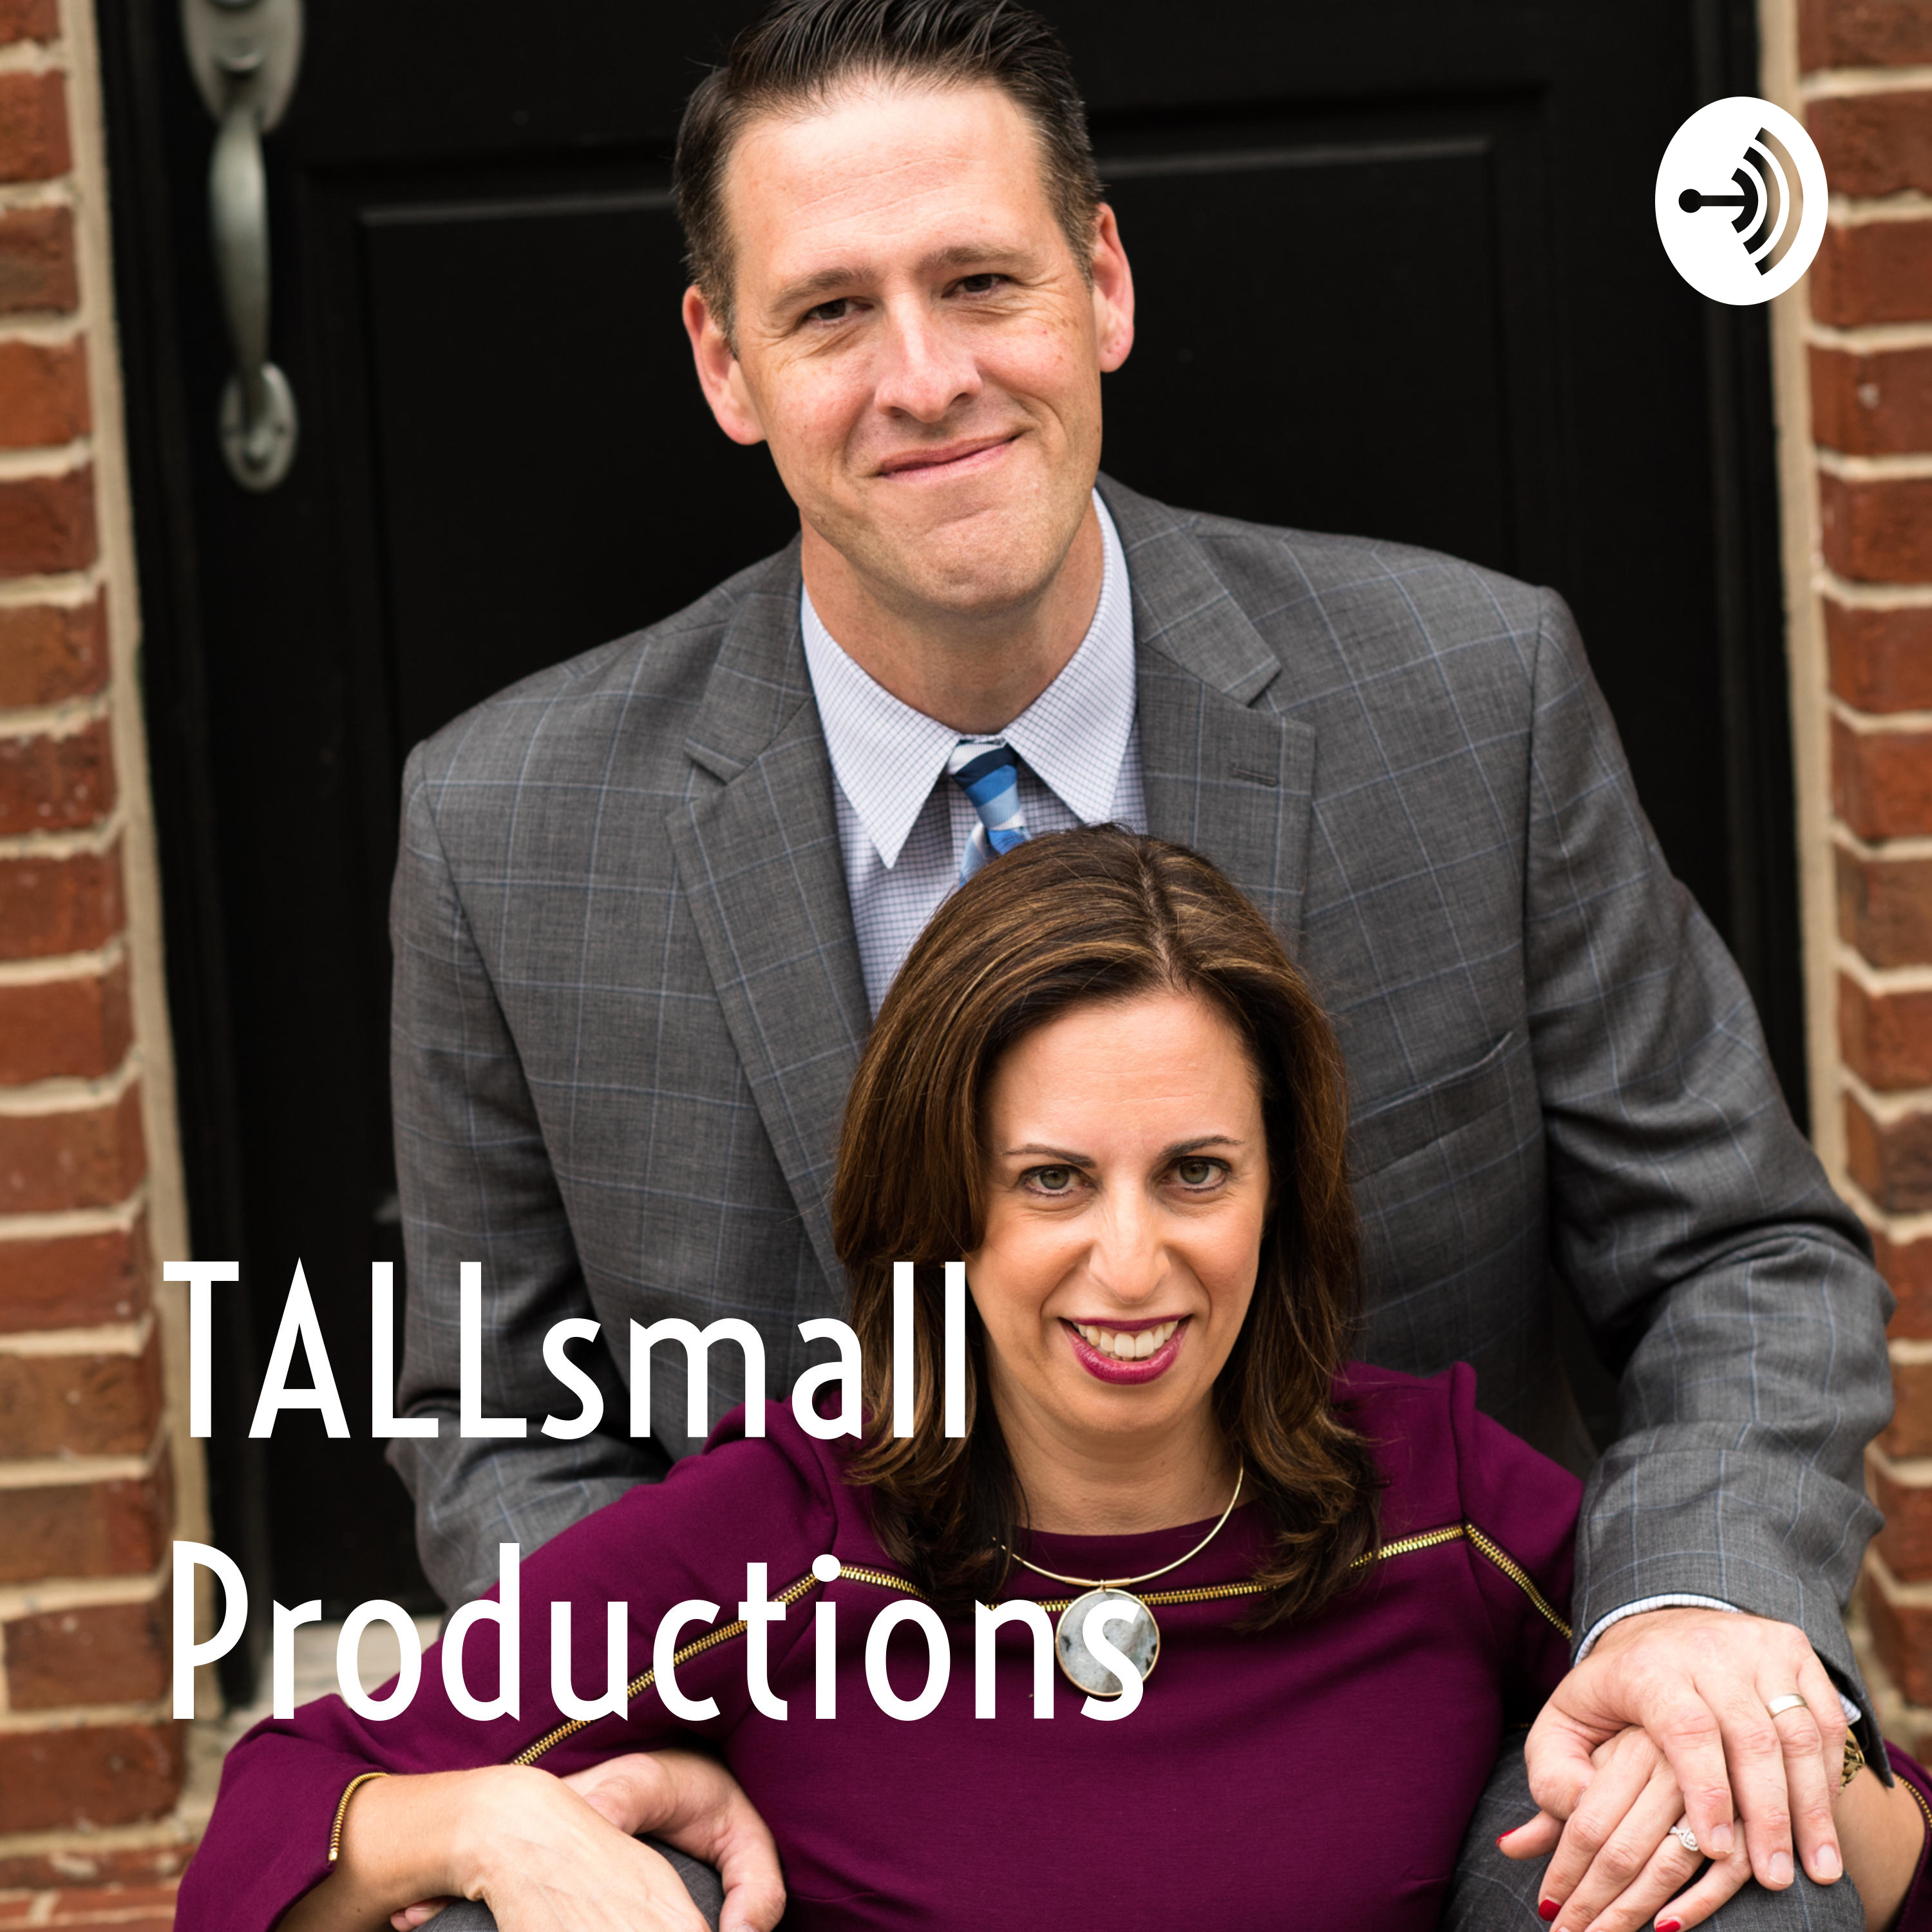 Who the heck are the duo called TALLsmall?